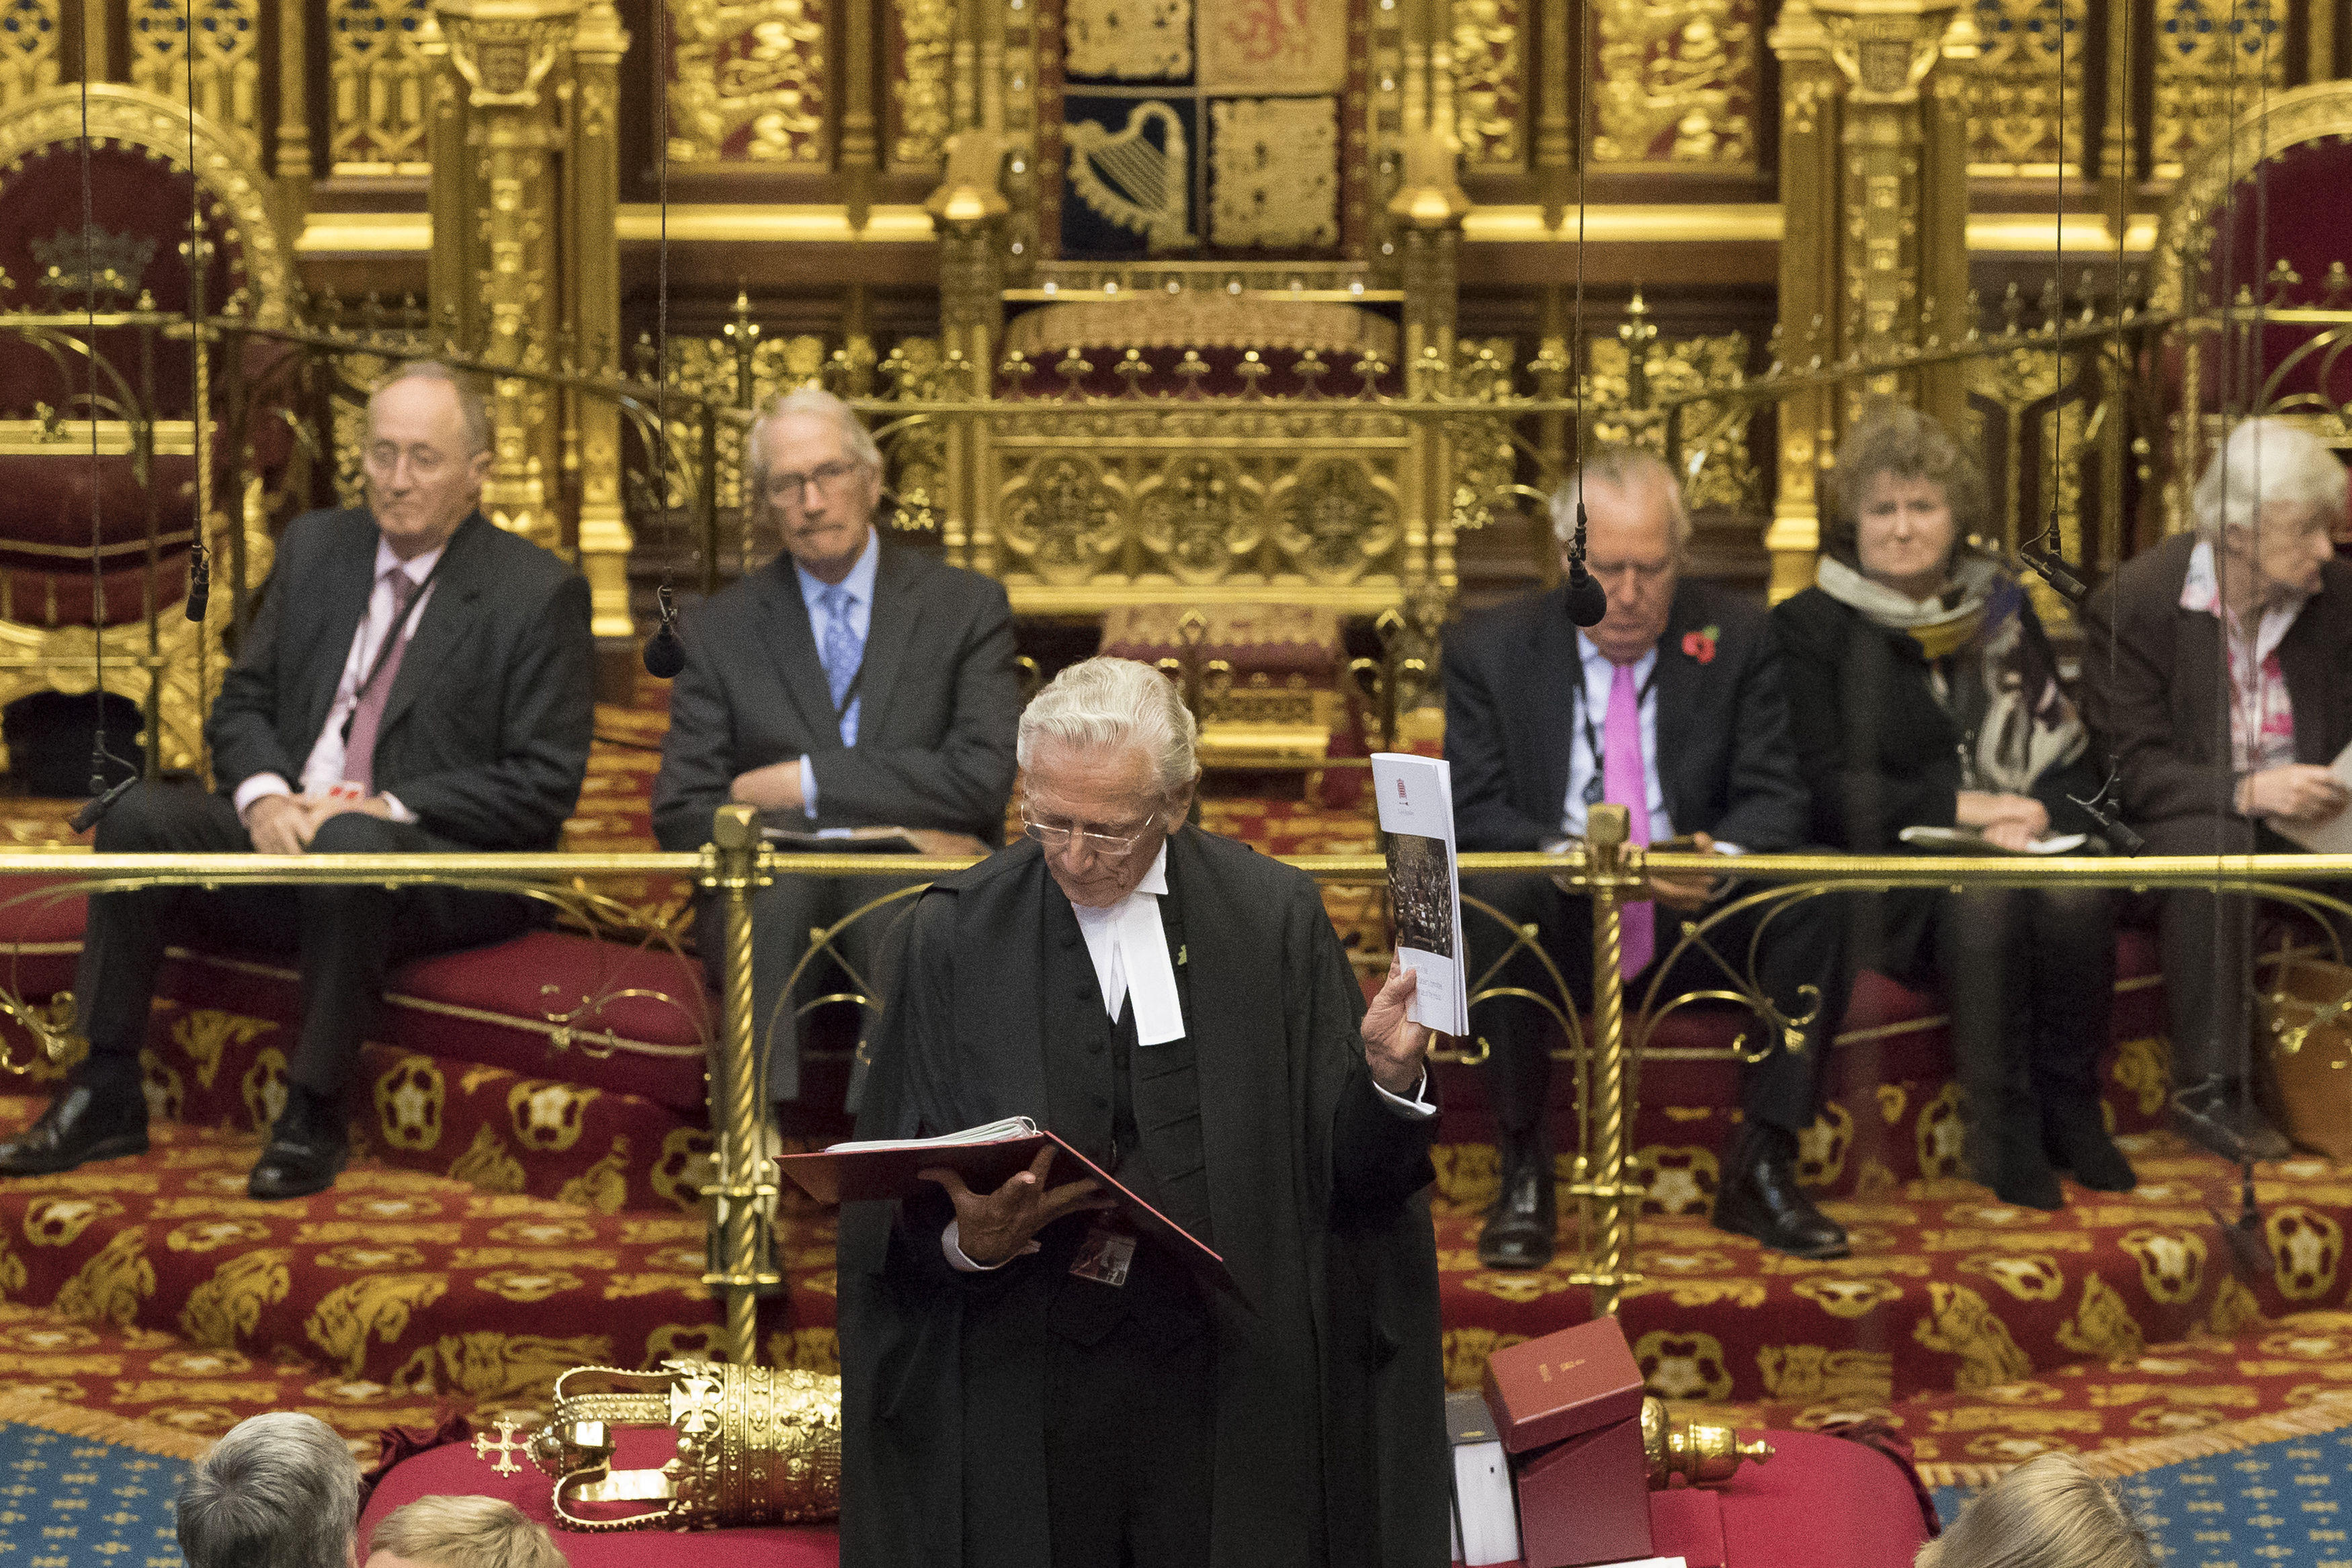 Lord Speaker Lord Fowler in the House of Lords